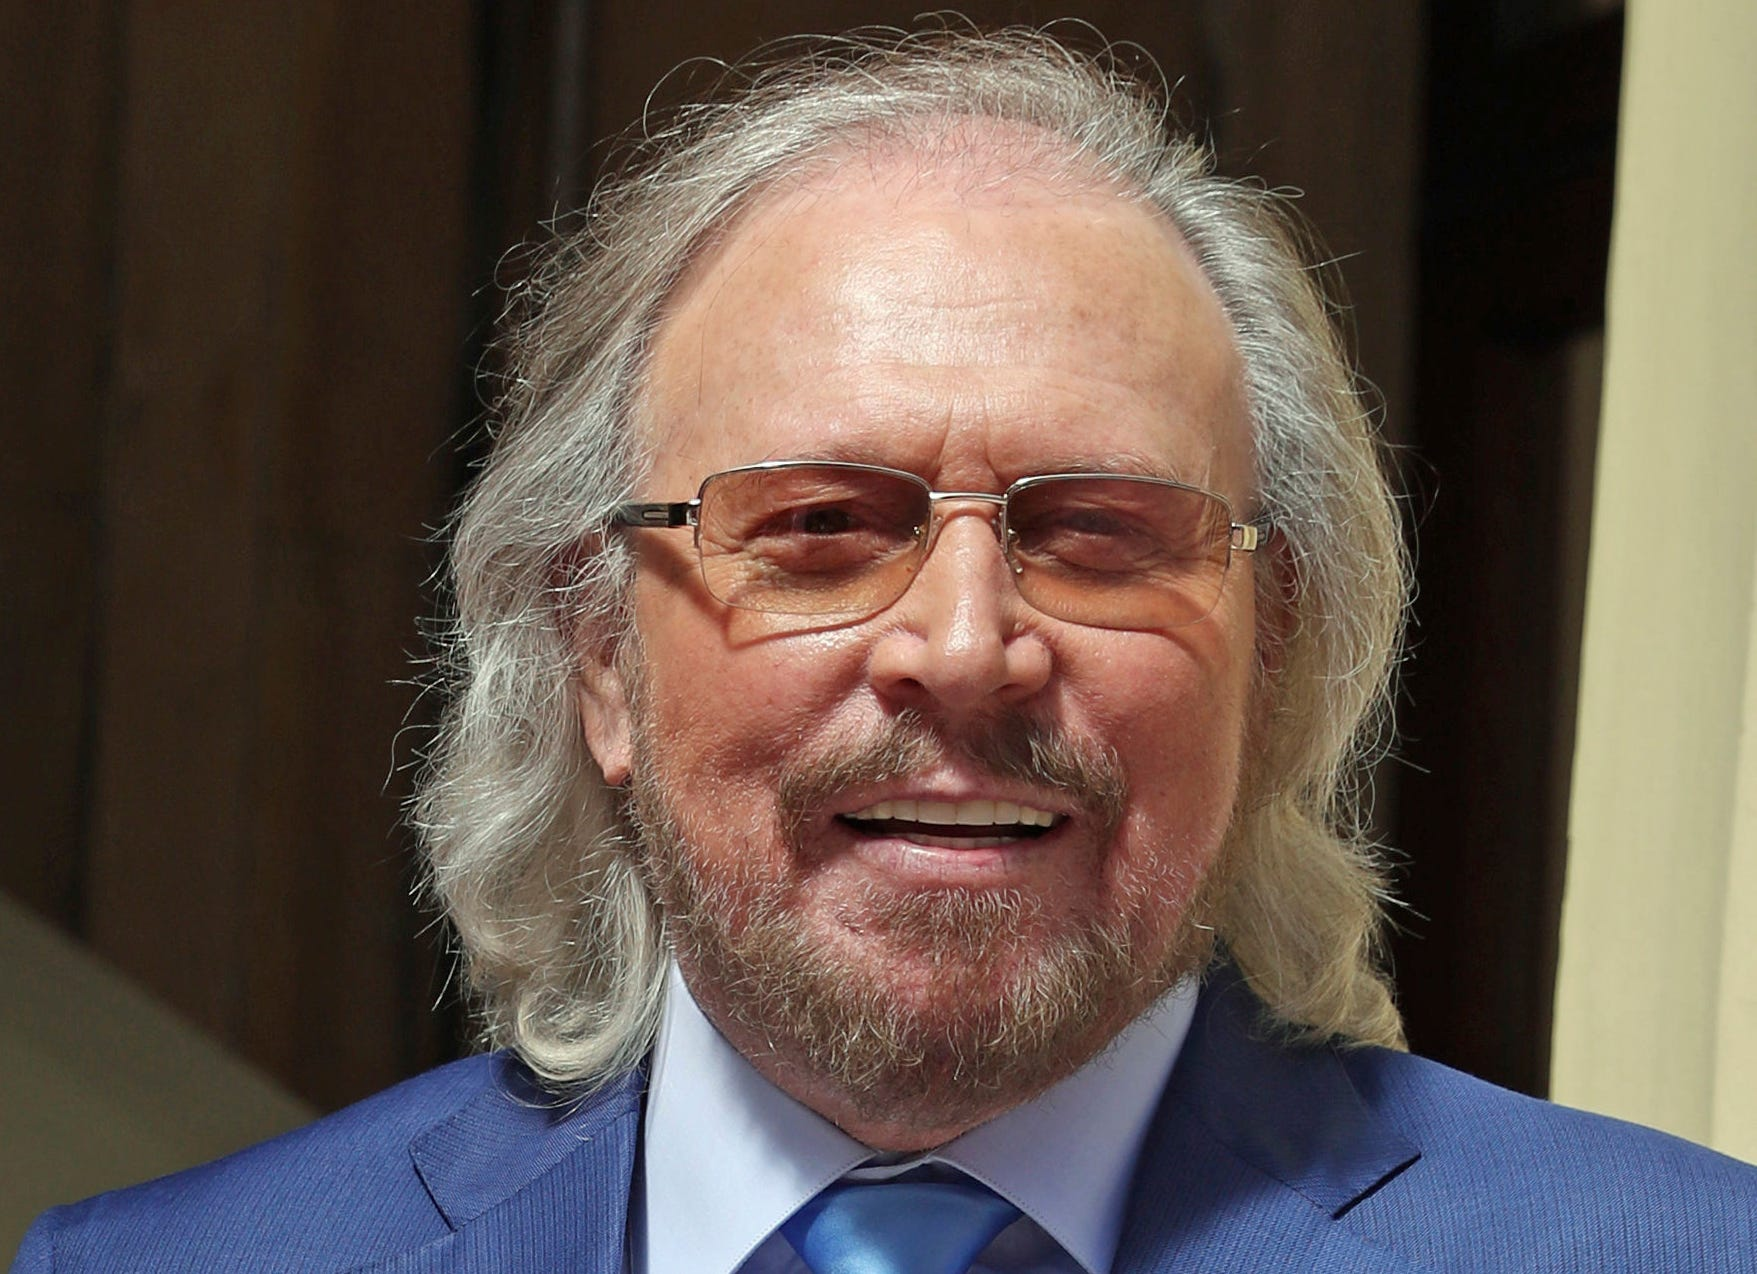 Knight fever: He's Sir Barry Gibb as last of Bee Gees brothers is knighted at palace